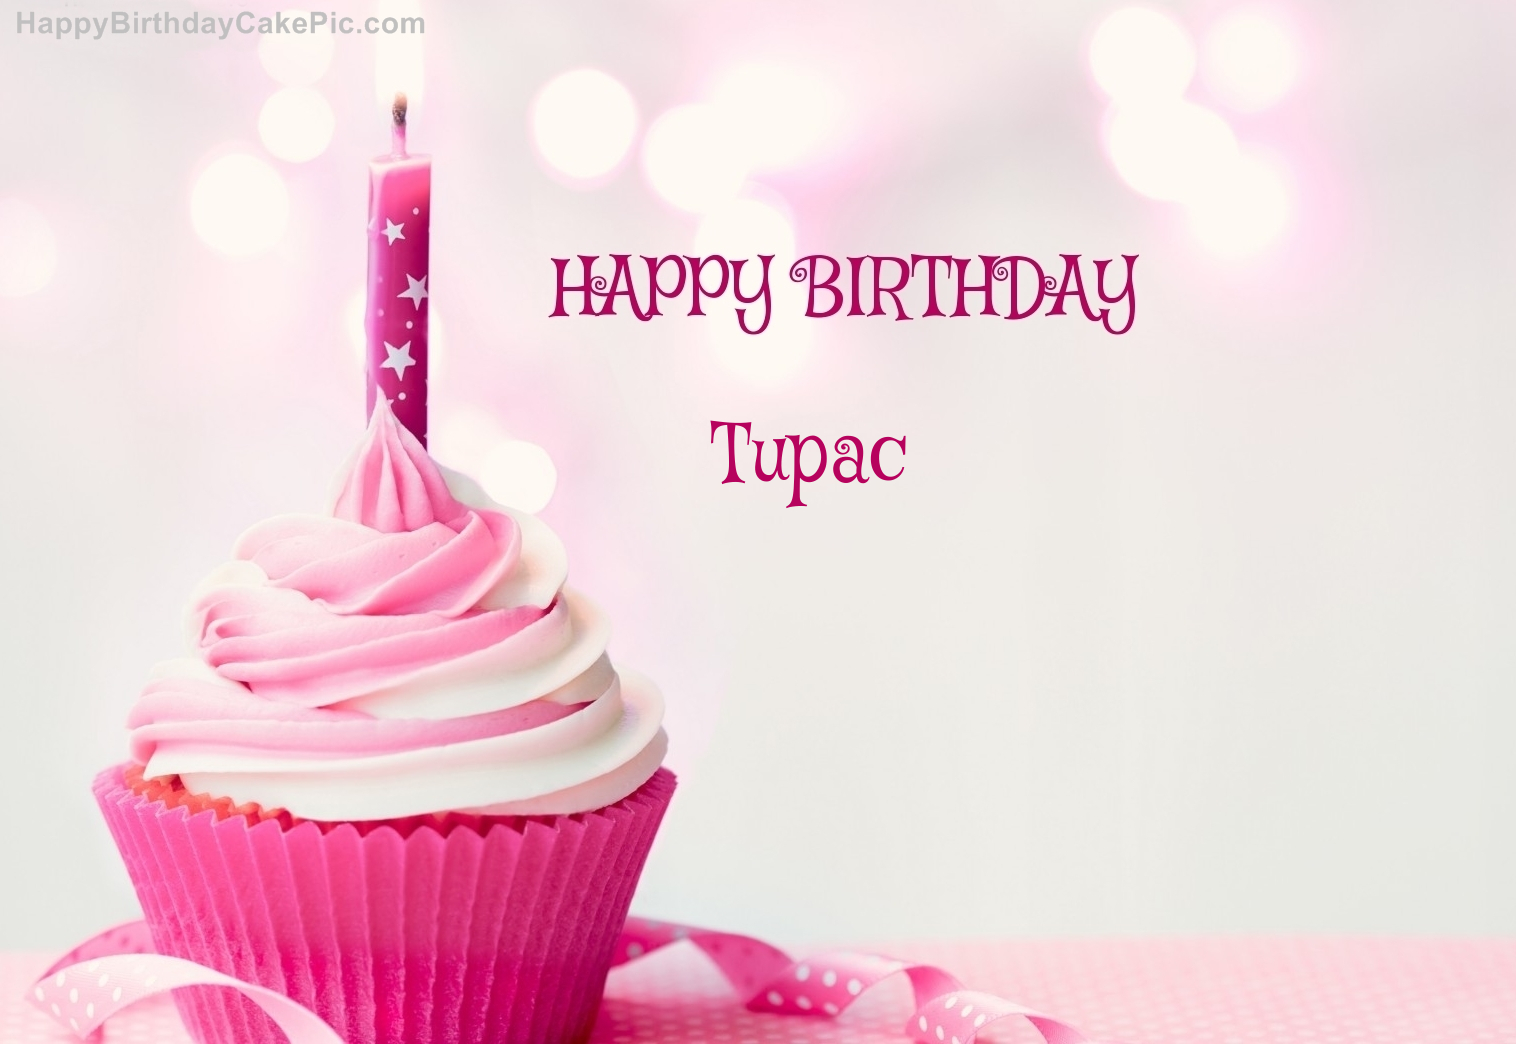 Happy Birthday Cupcake Candle Pink Cake For Tupac